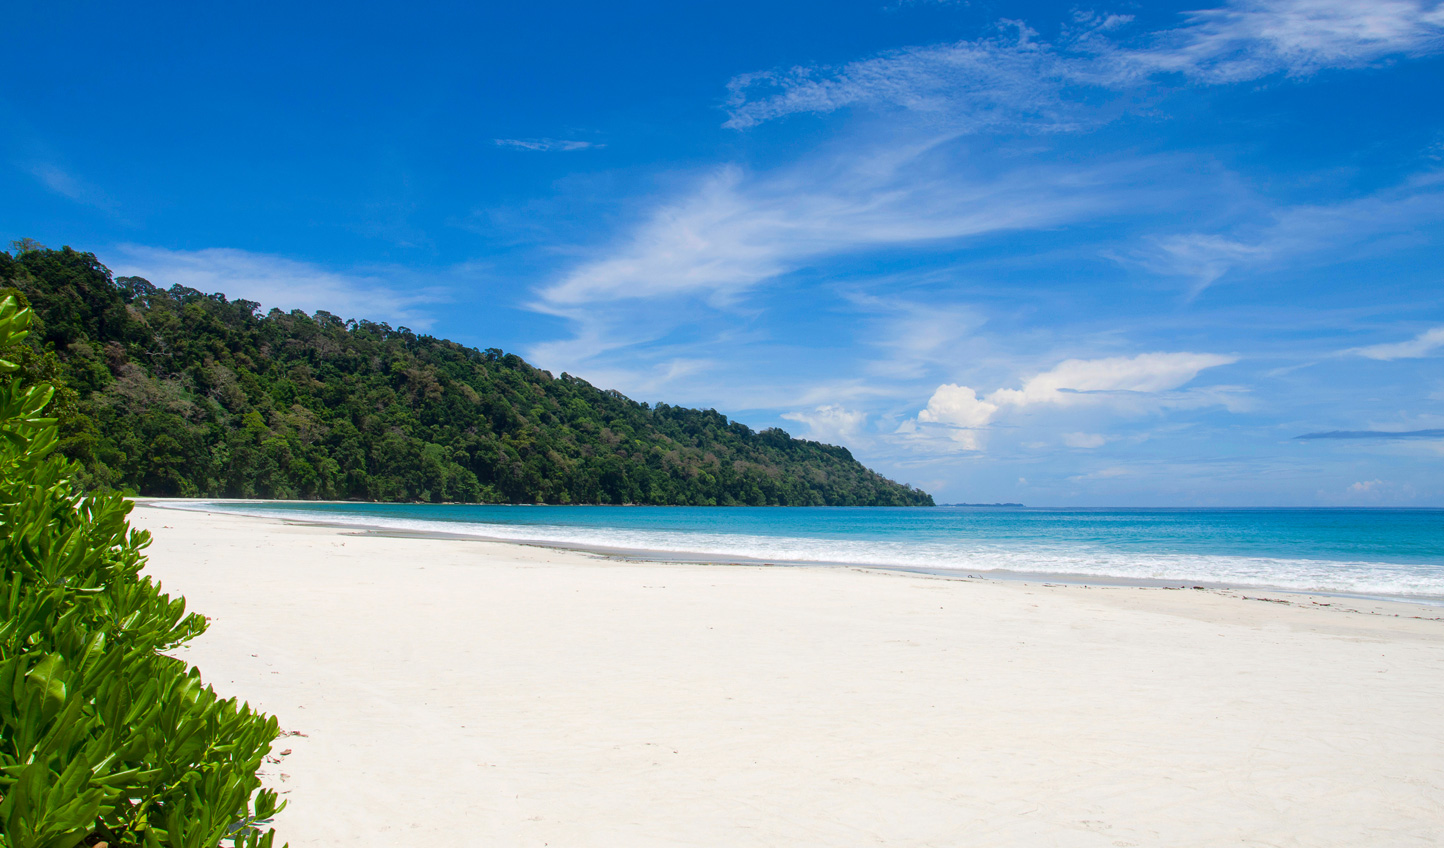 Stroll along the undiscovered beaches of the Andaman Islands